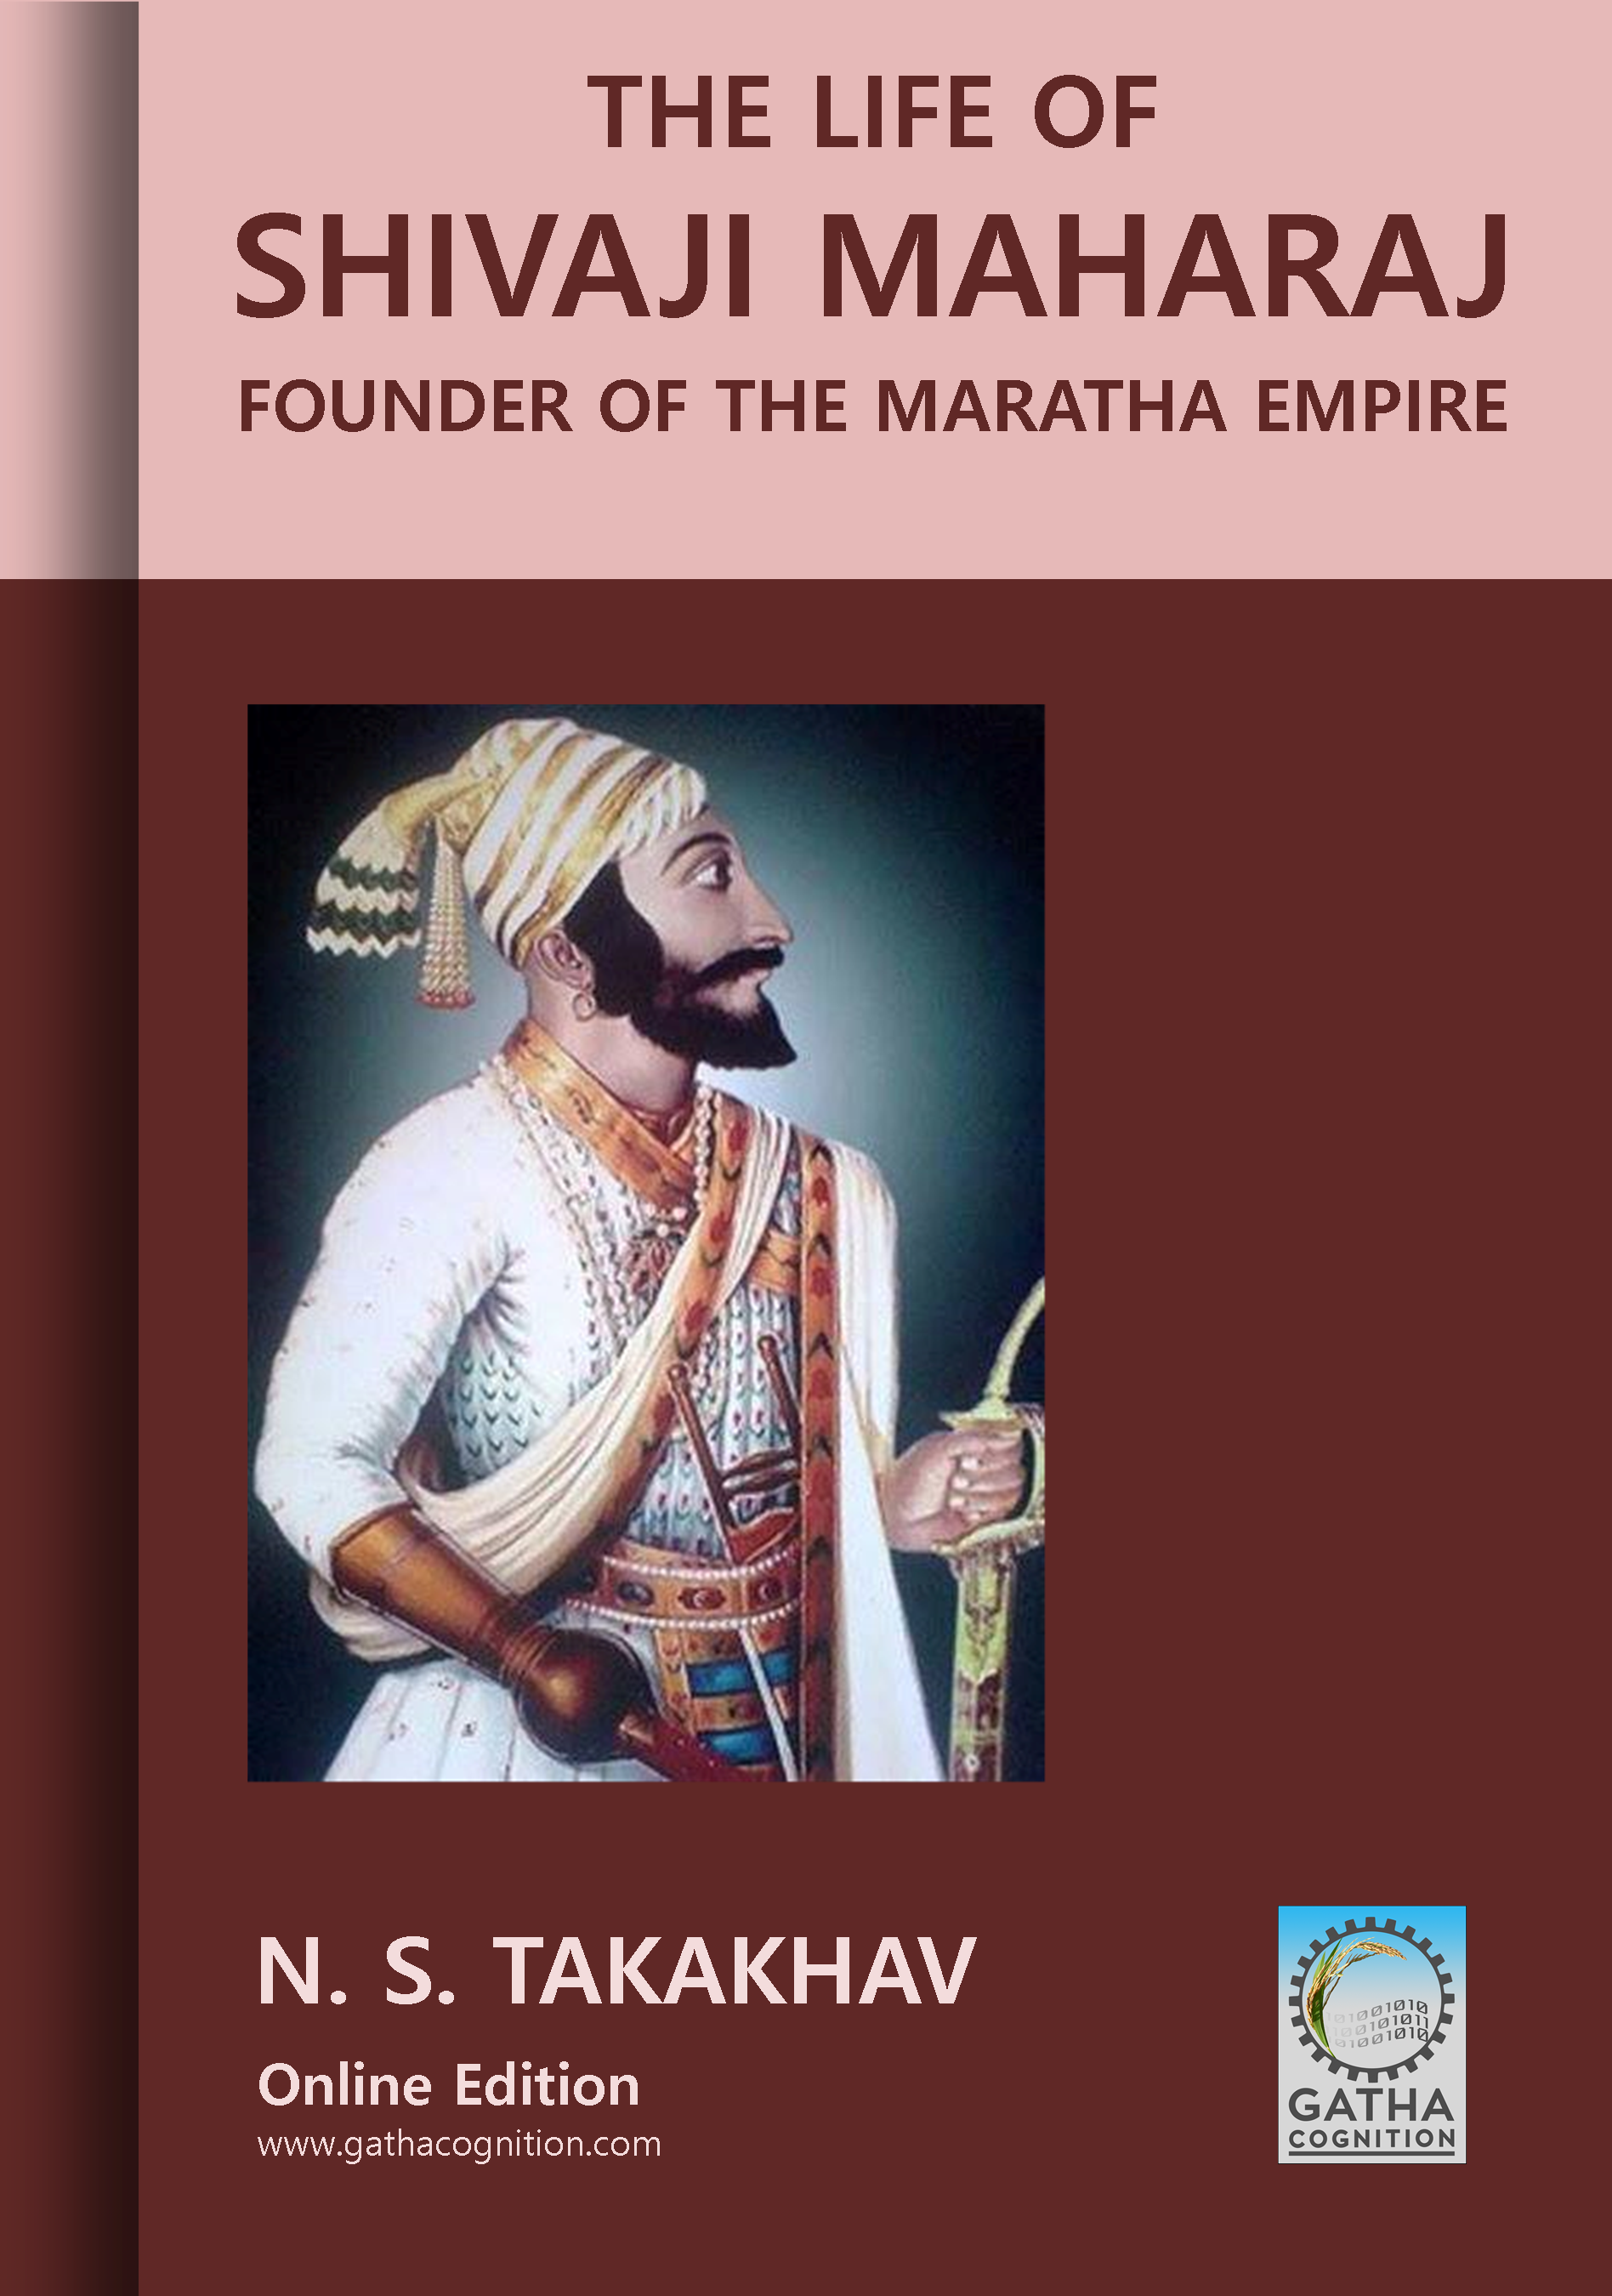 The Life of Shivaji Maharaj: Founder of the Maratha Empire